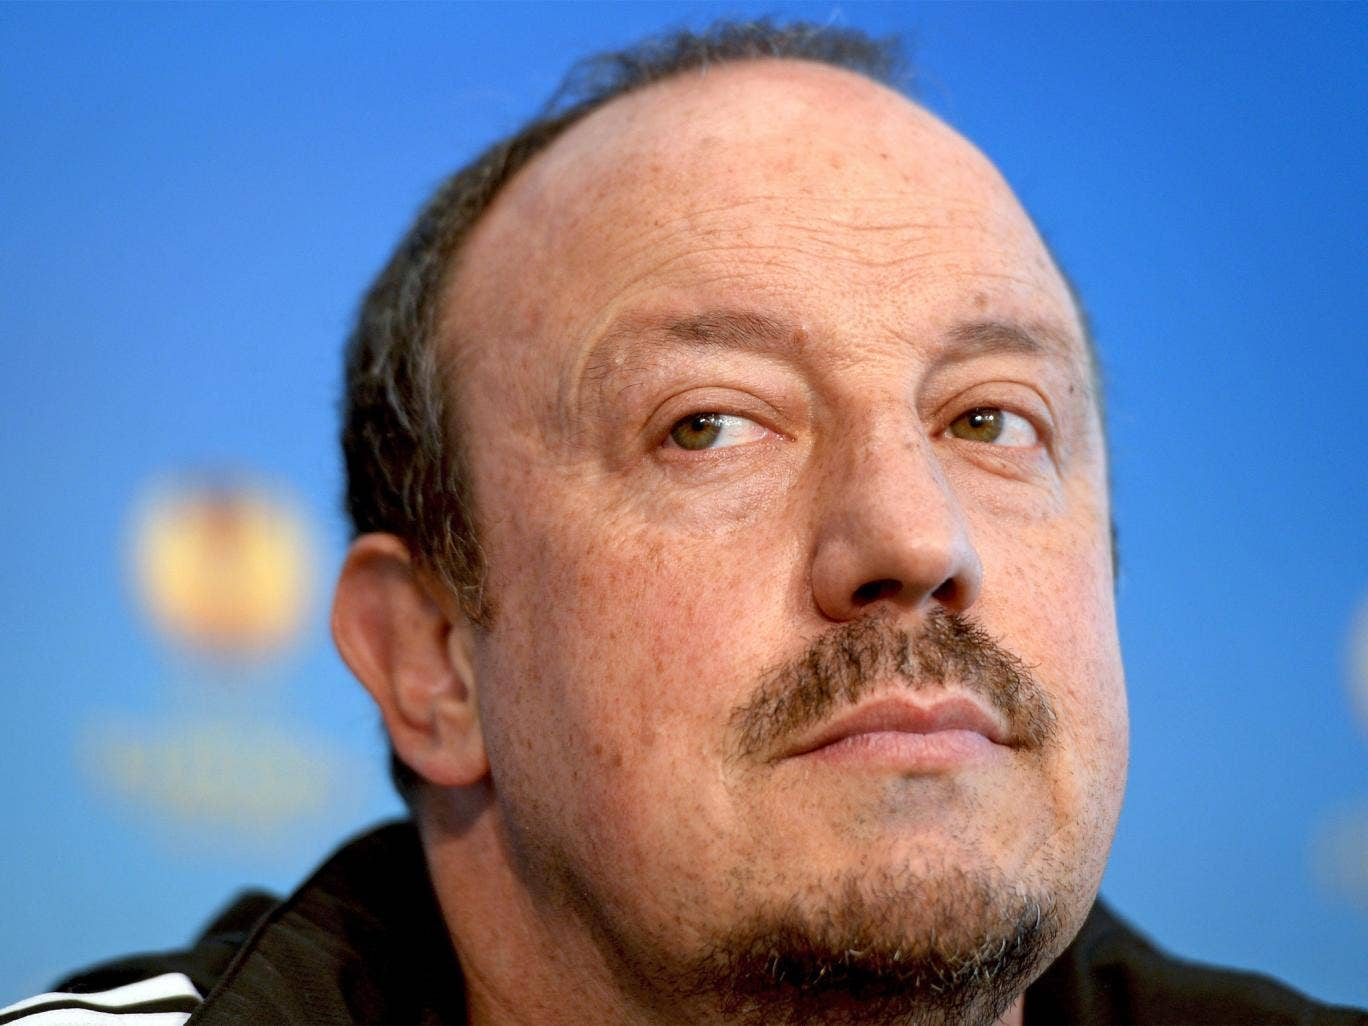 Rafa Benitez insisted Chelsea are 'doing a good job' in remaining competitive